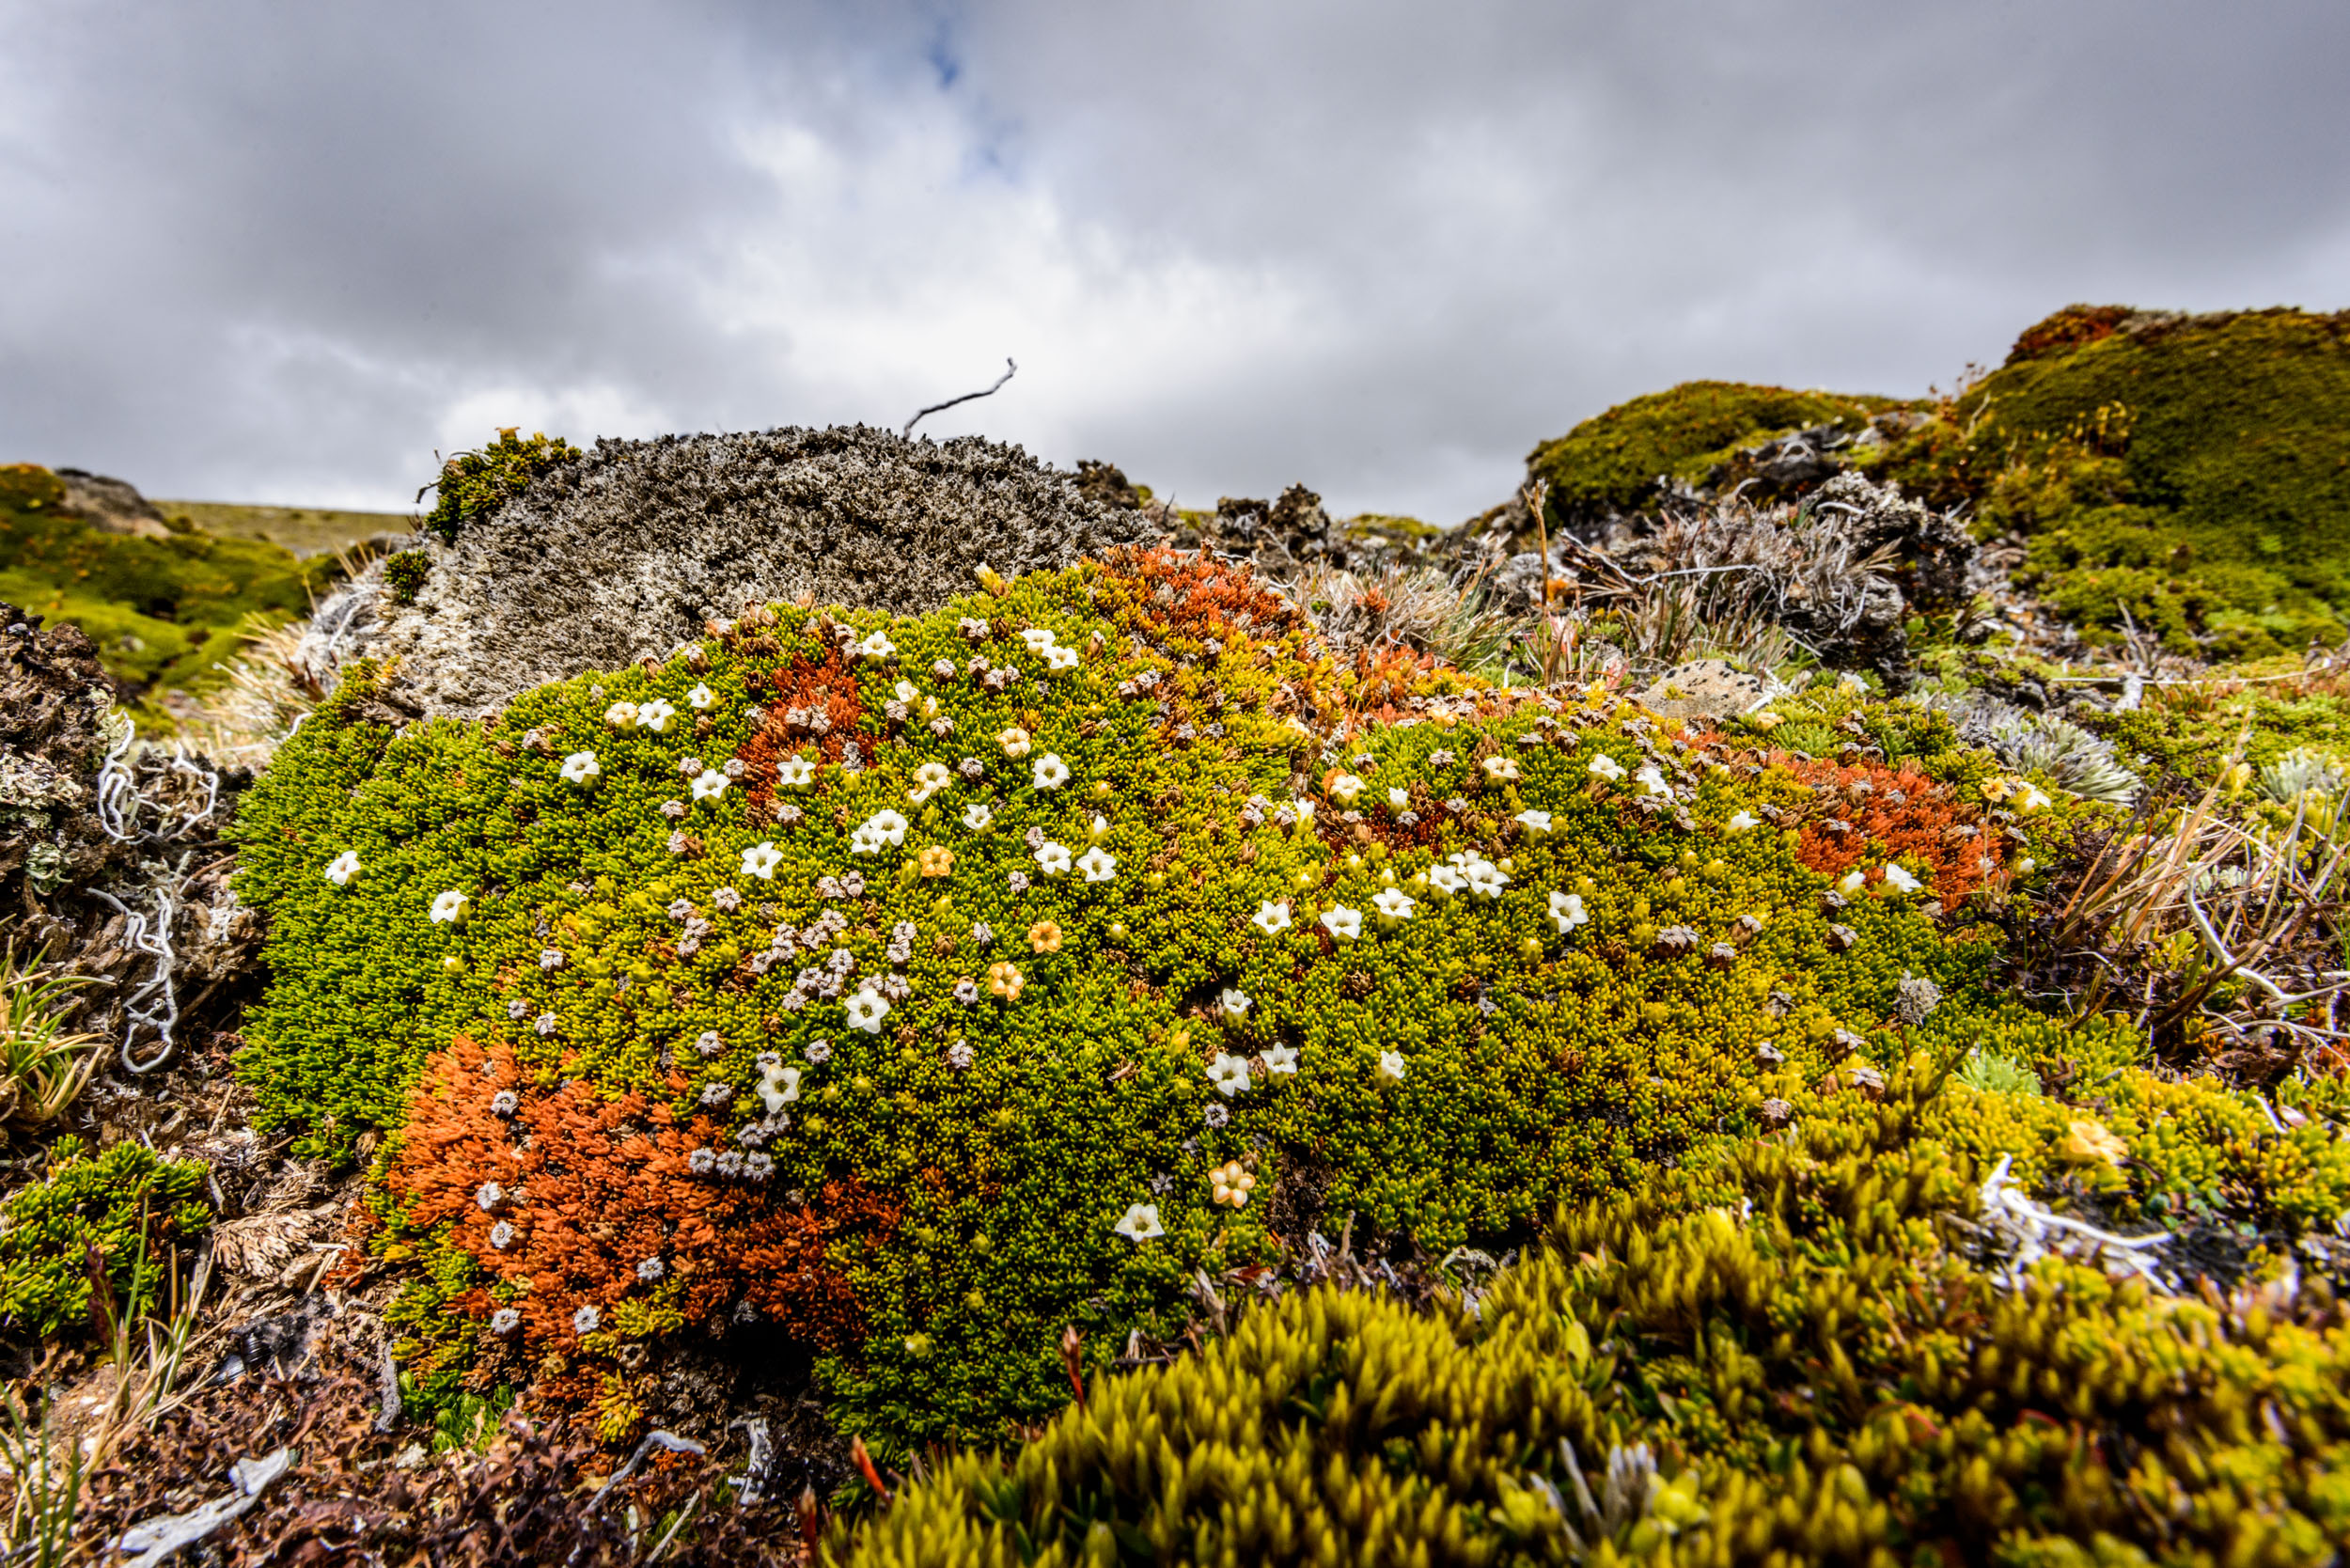 Mounds of alpine plants in New Zealand high country.